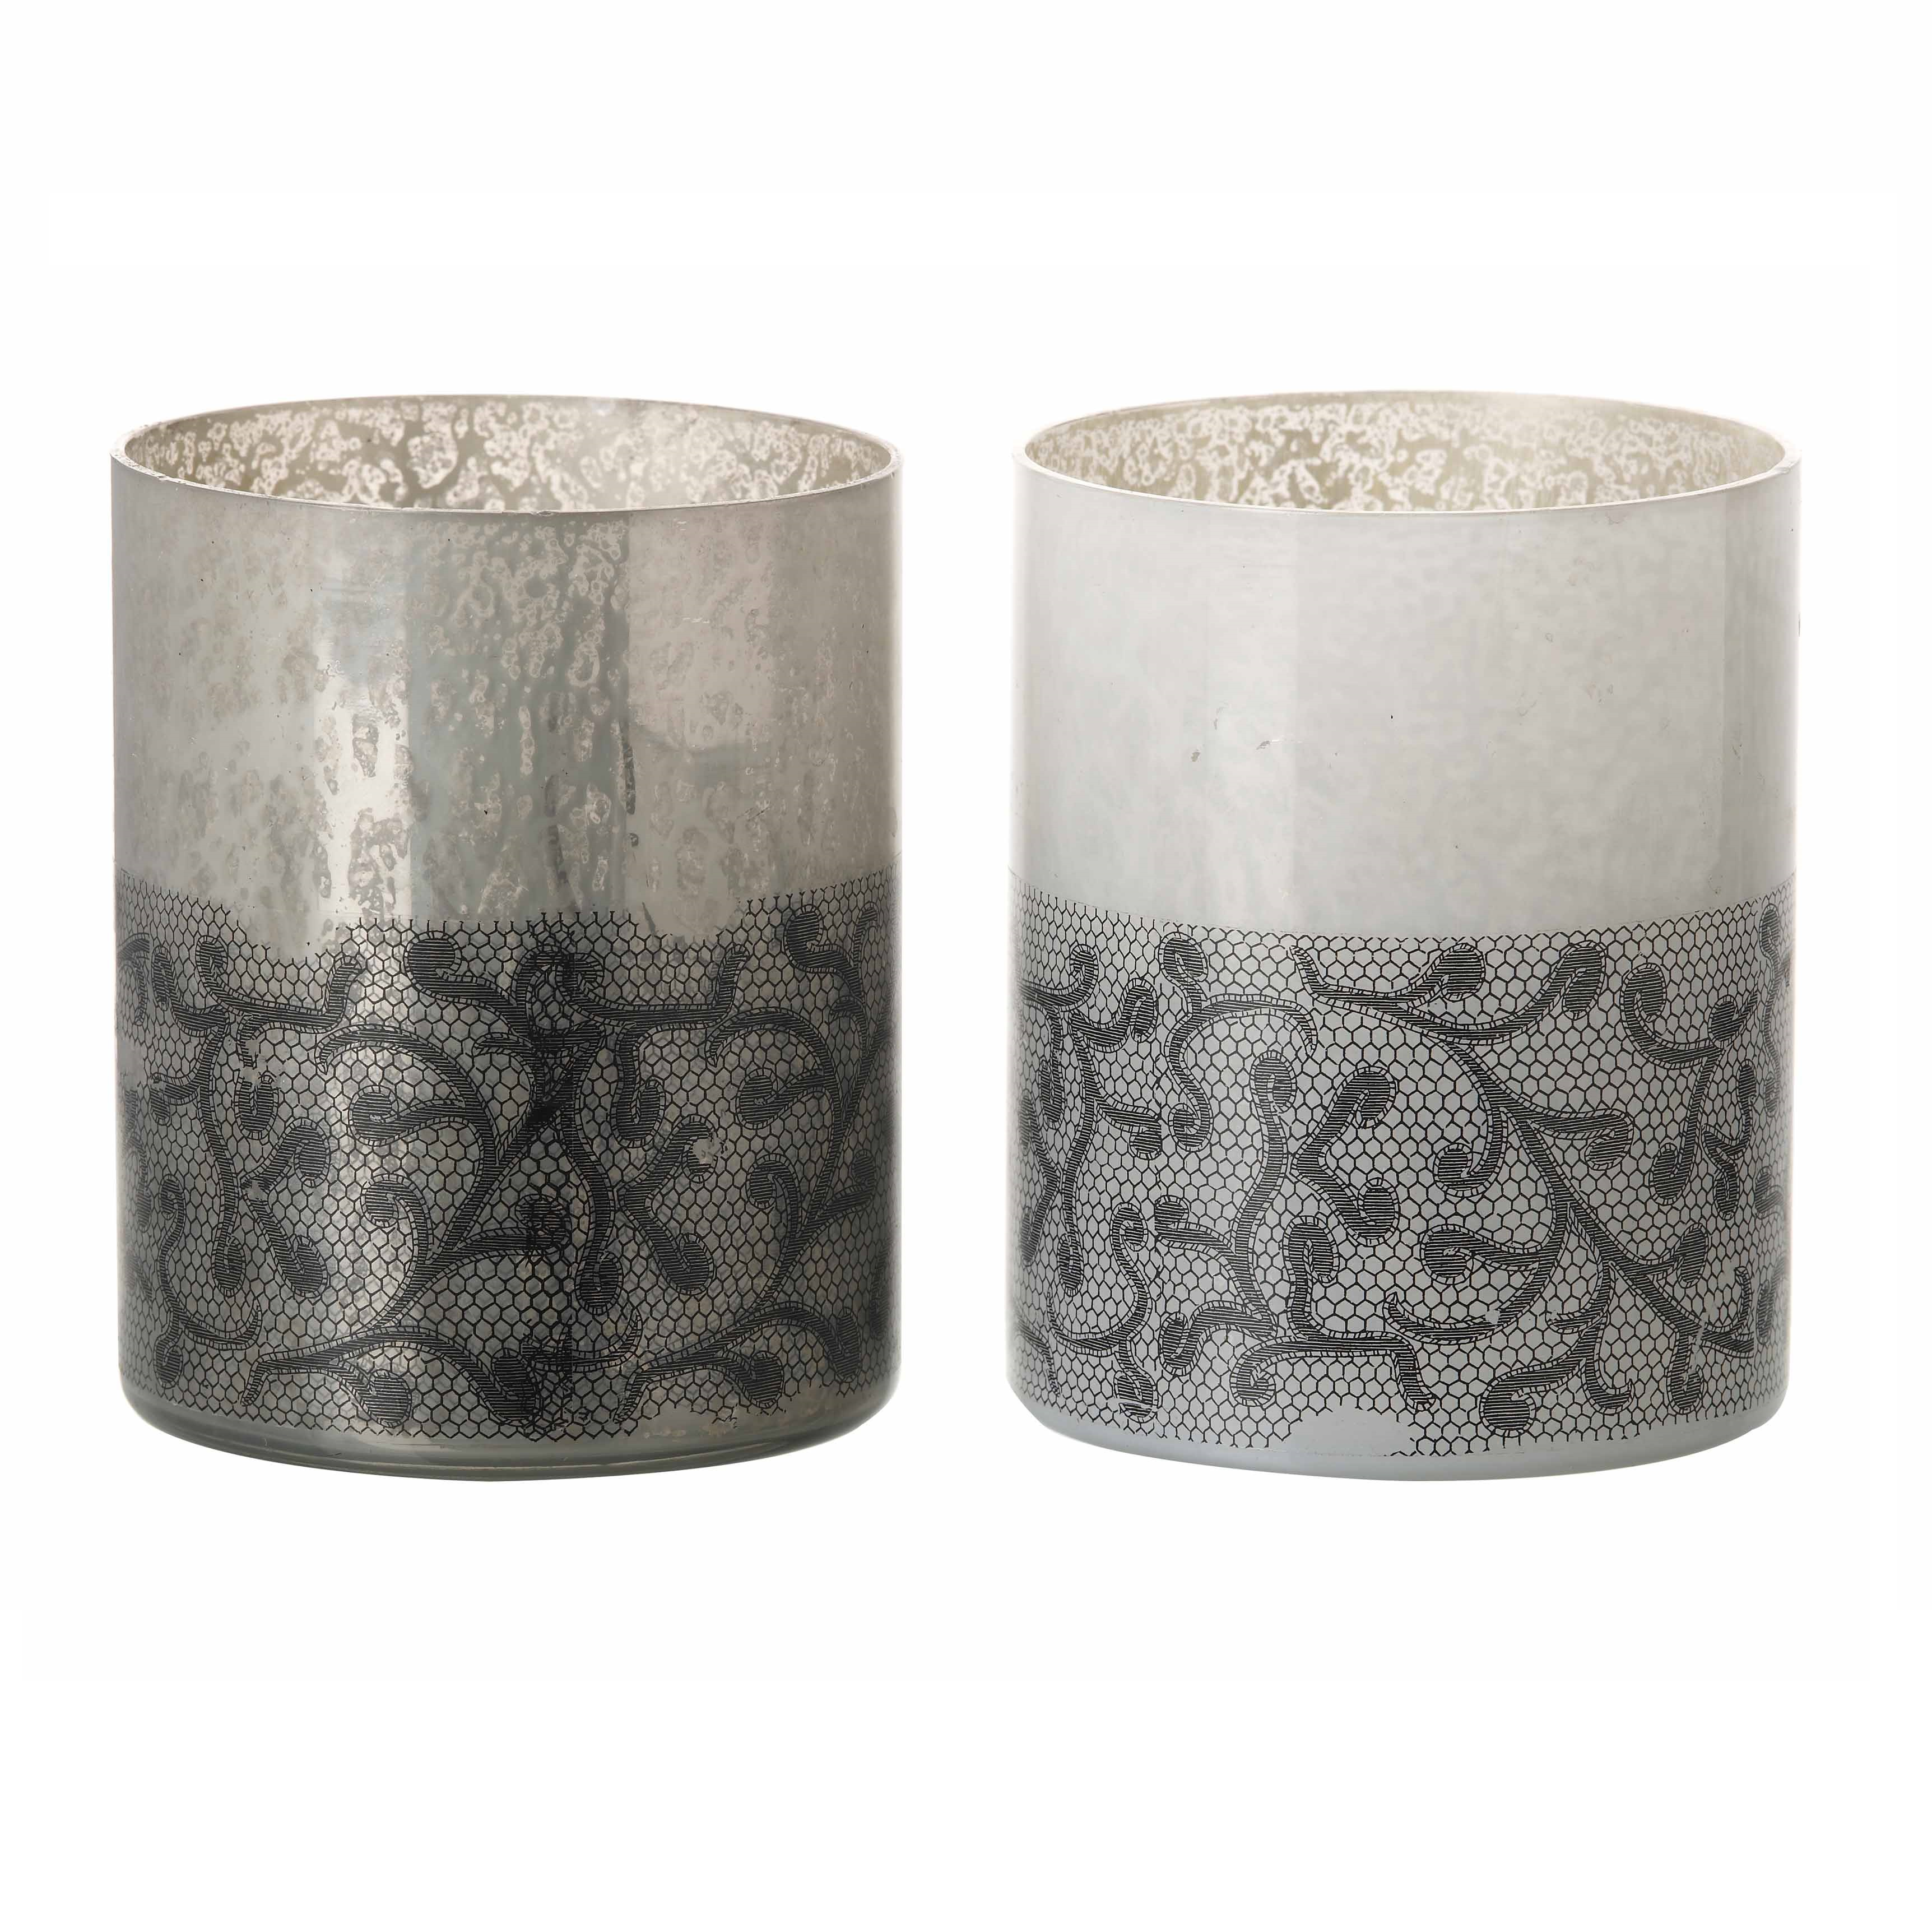 Wholesale Tealight candle holders are made with high quality glass. Tea light holders adds an elegant look to any party. Fill them with sand or other decorative elements and place your tea lights in the center. Choose from glass, metal, ceramic and wax holders that best suit your desired look. Large